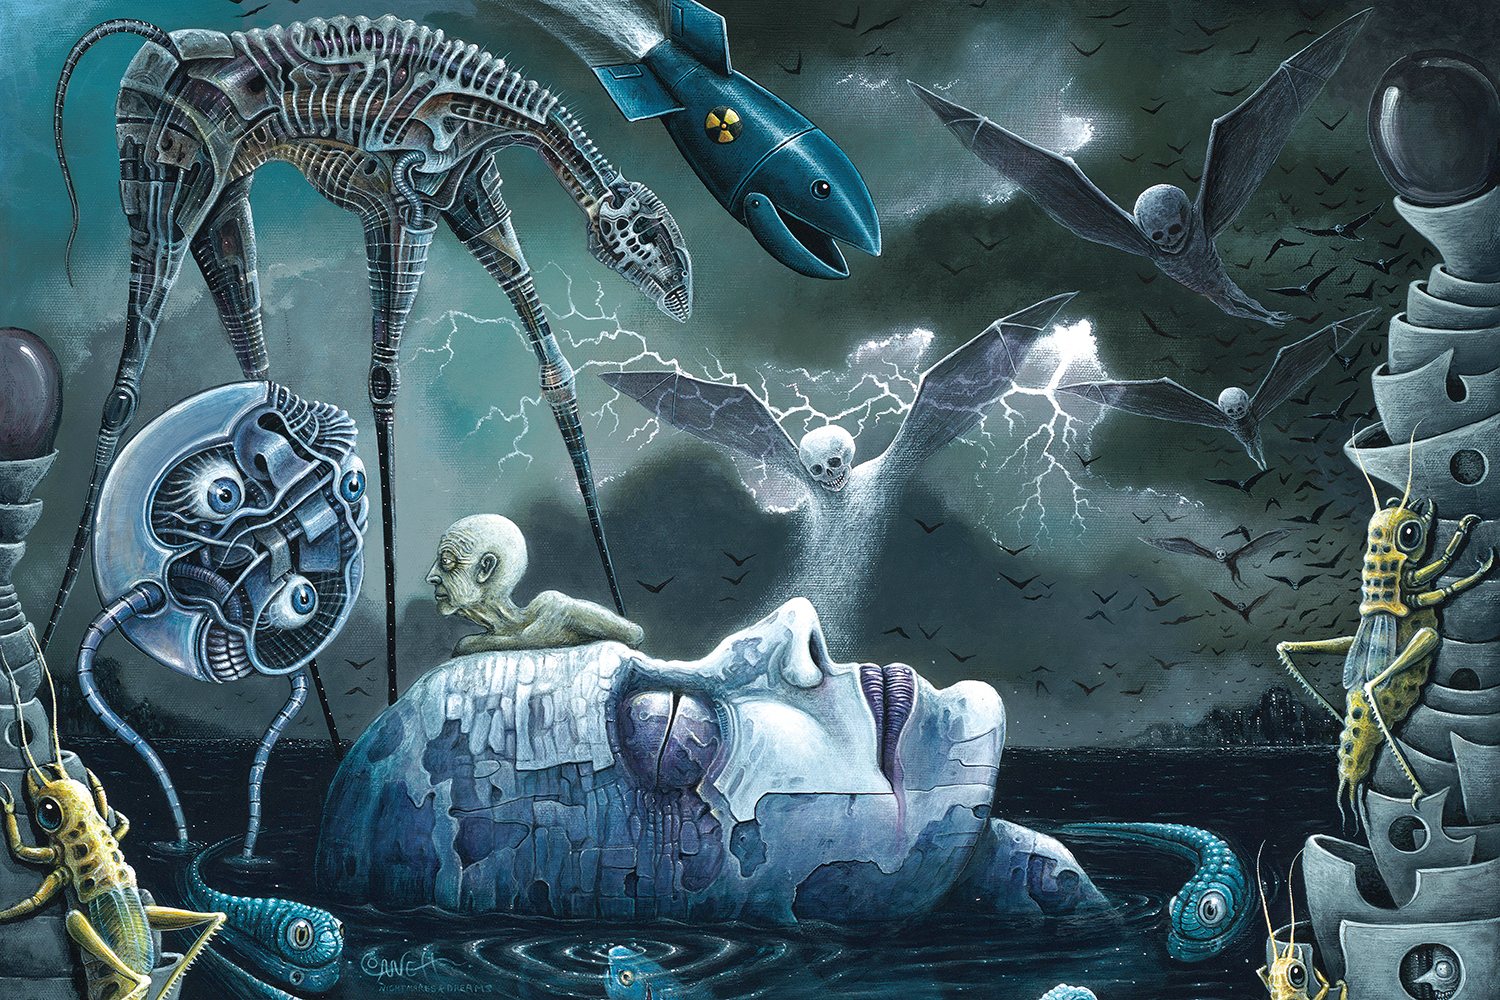 Profile of a mechanical head floating in water with eyes closed surrounded by mechanical fish and insects and flying skeletons